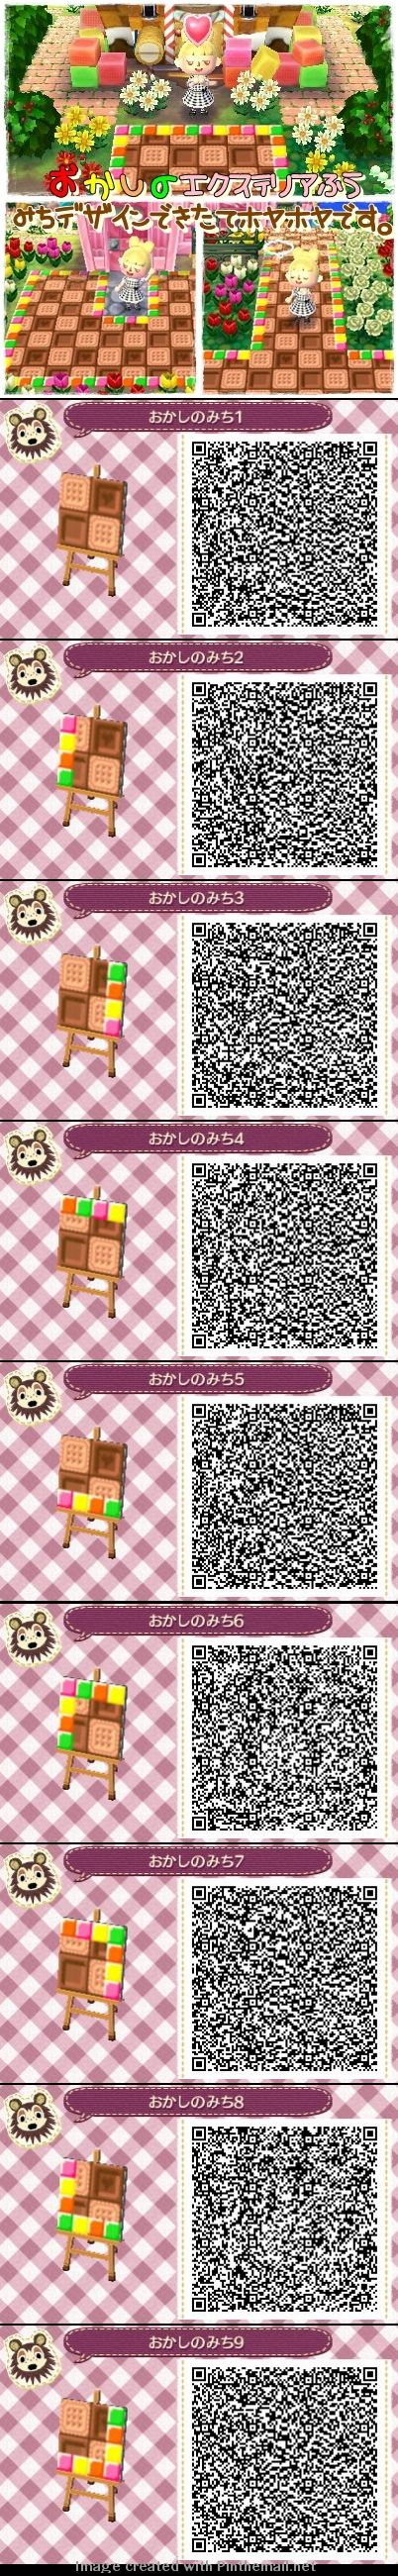 Animal crossing code for and patterns on pinterest for Animal crossing boden qr